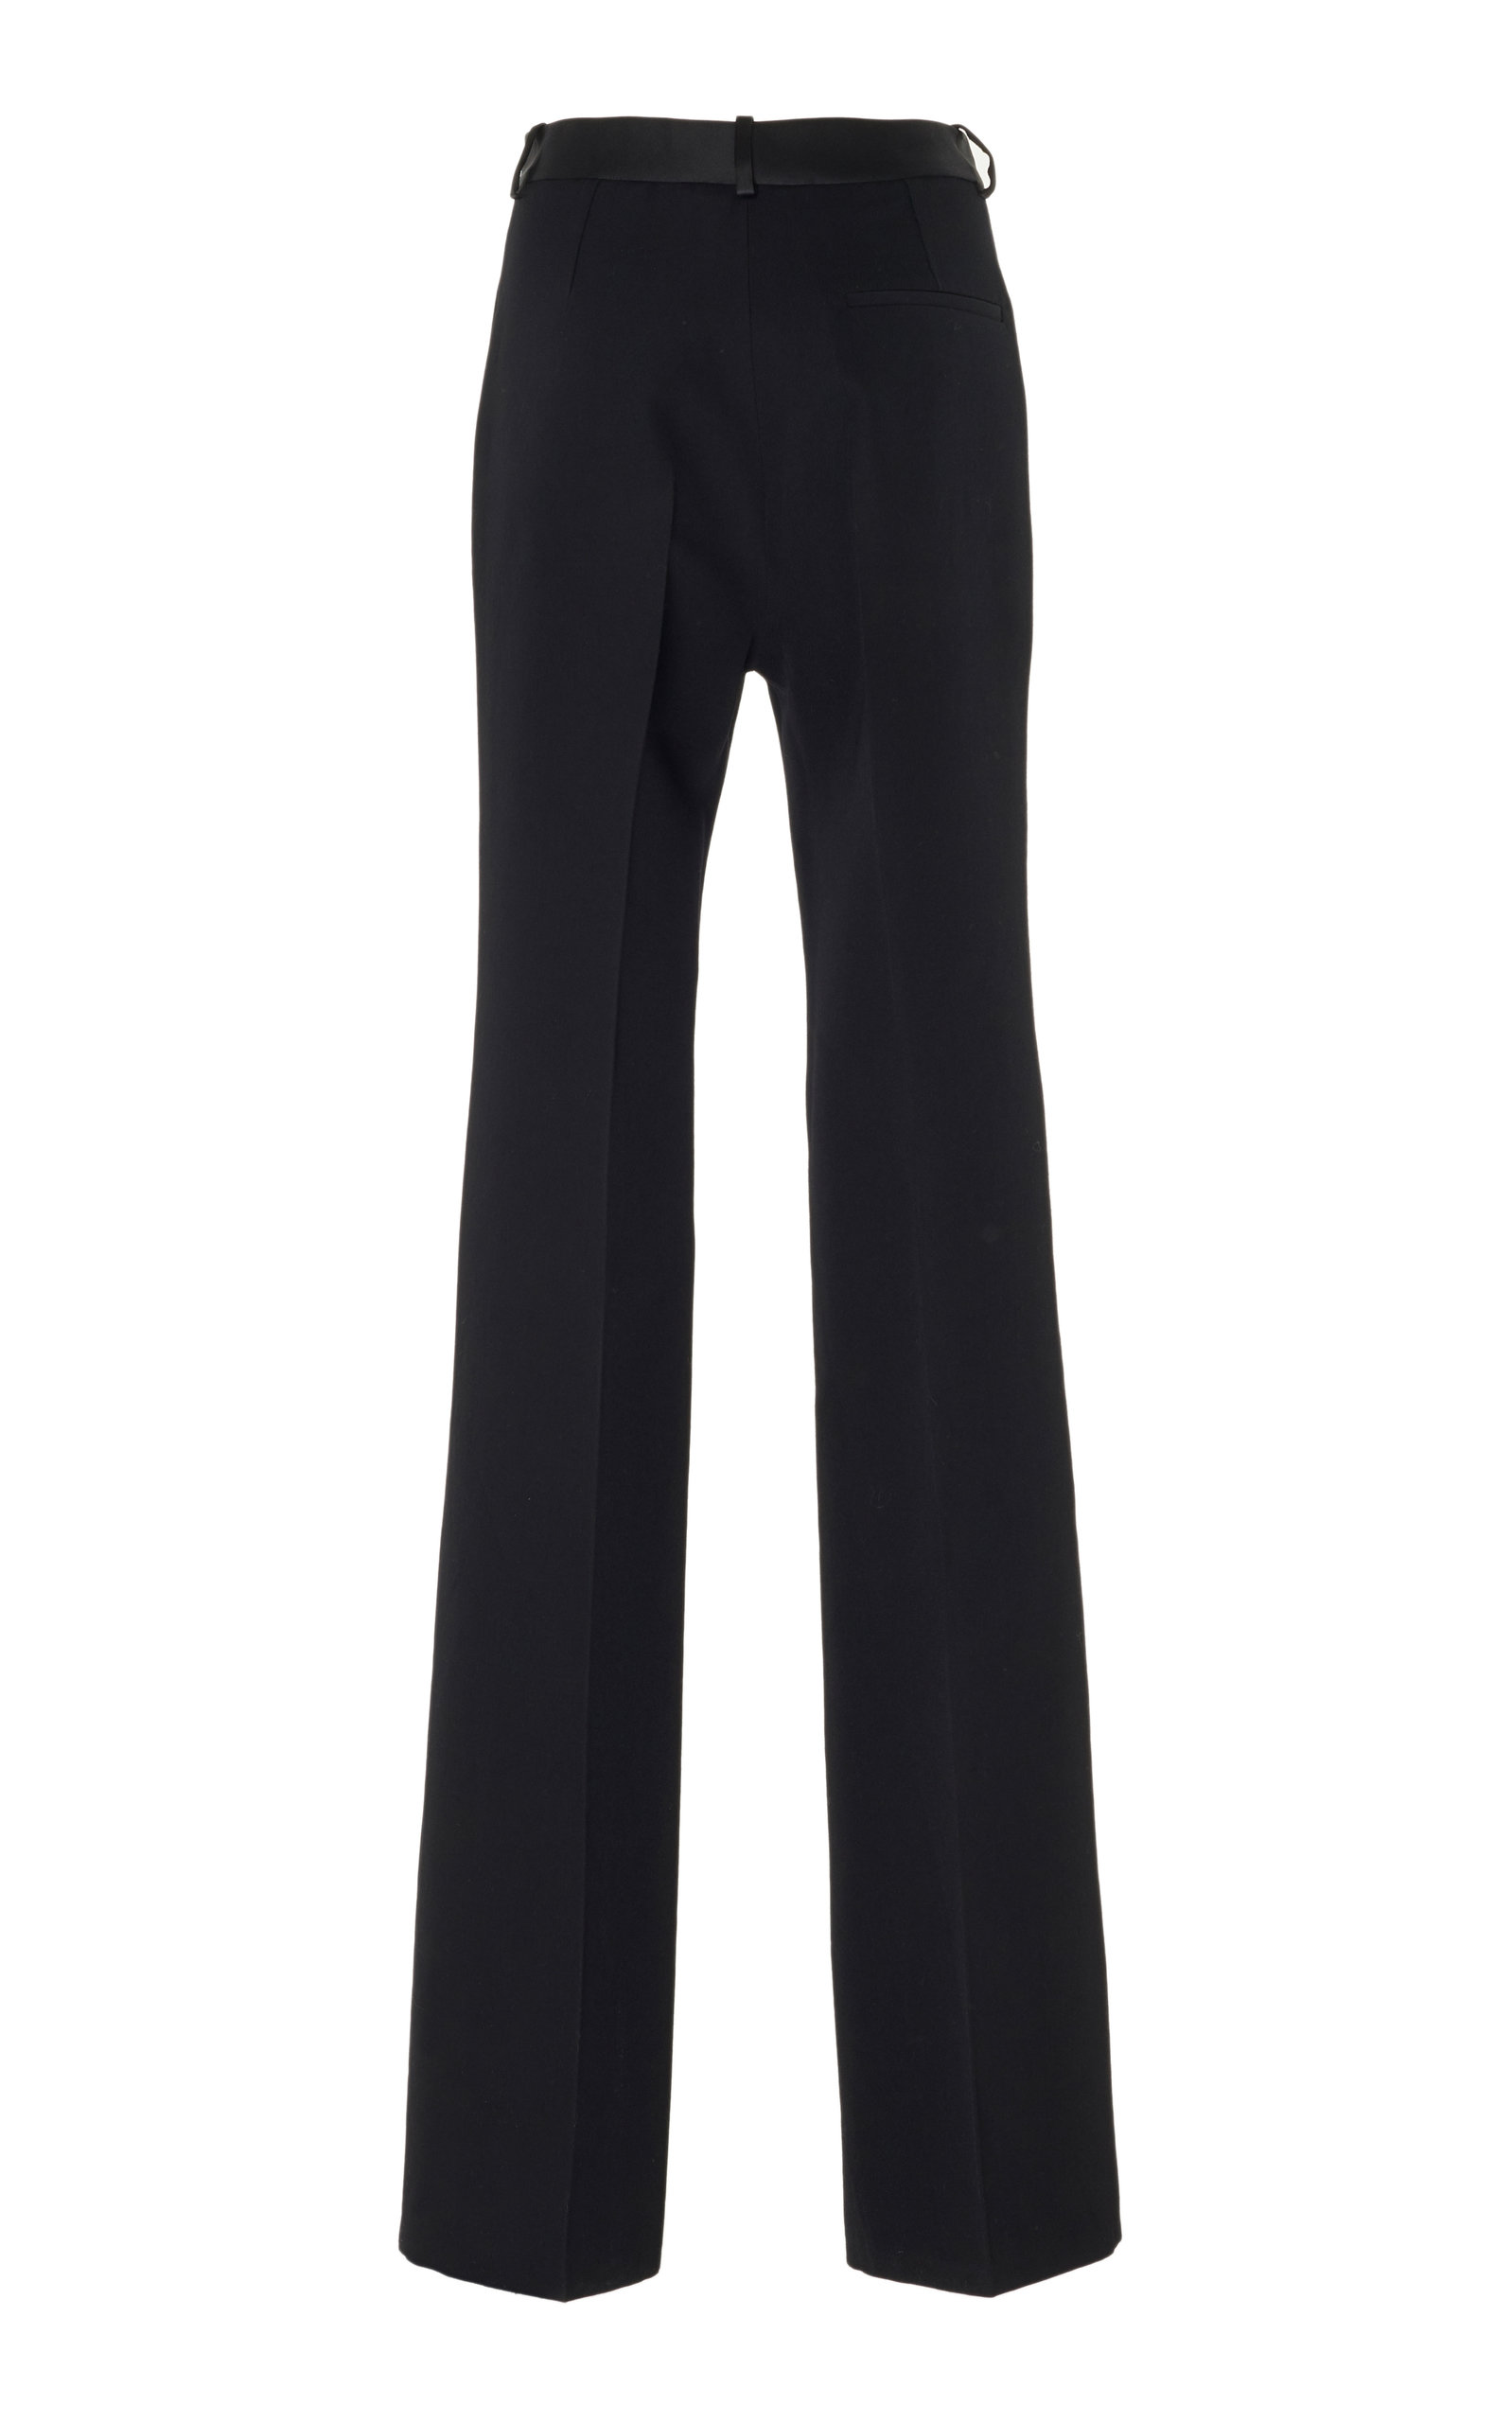 b83c78a56cb large_victoria-beckham-black-high-waisted-wool-wide-leg-pants.jpg